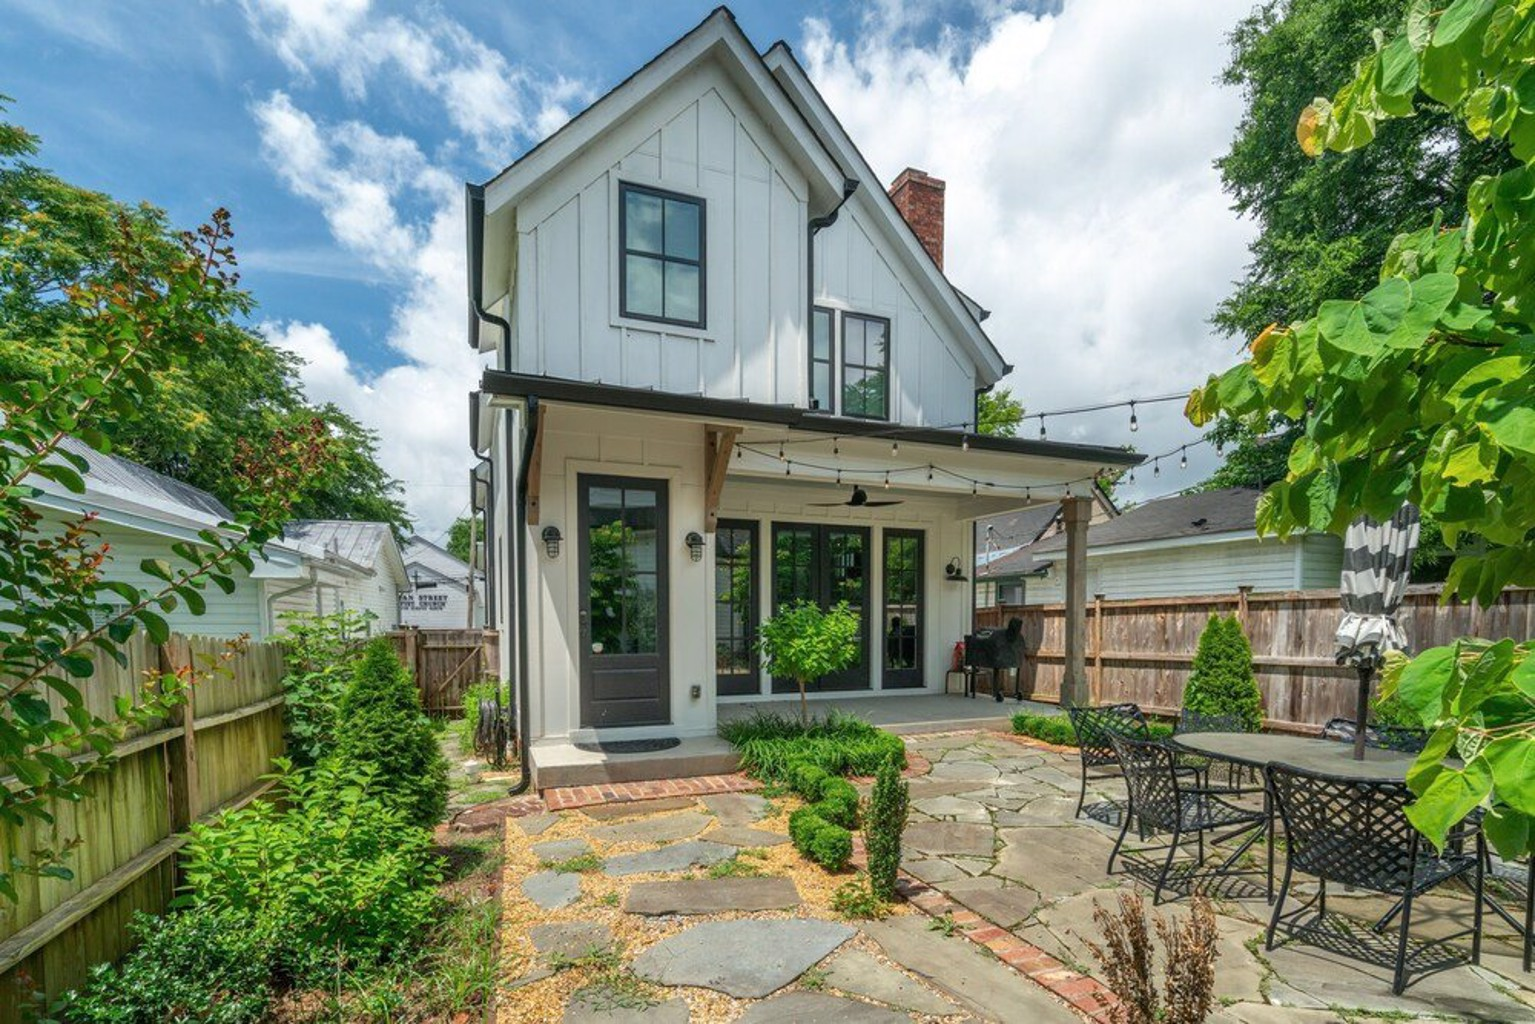 Chic Germantown Home 4 Bedrooms 3.5 Bathrooms Home